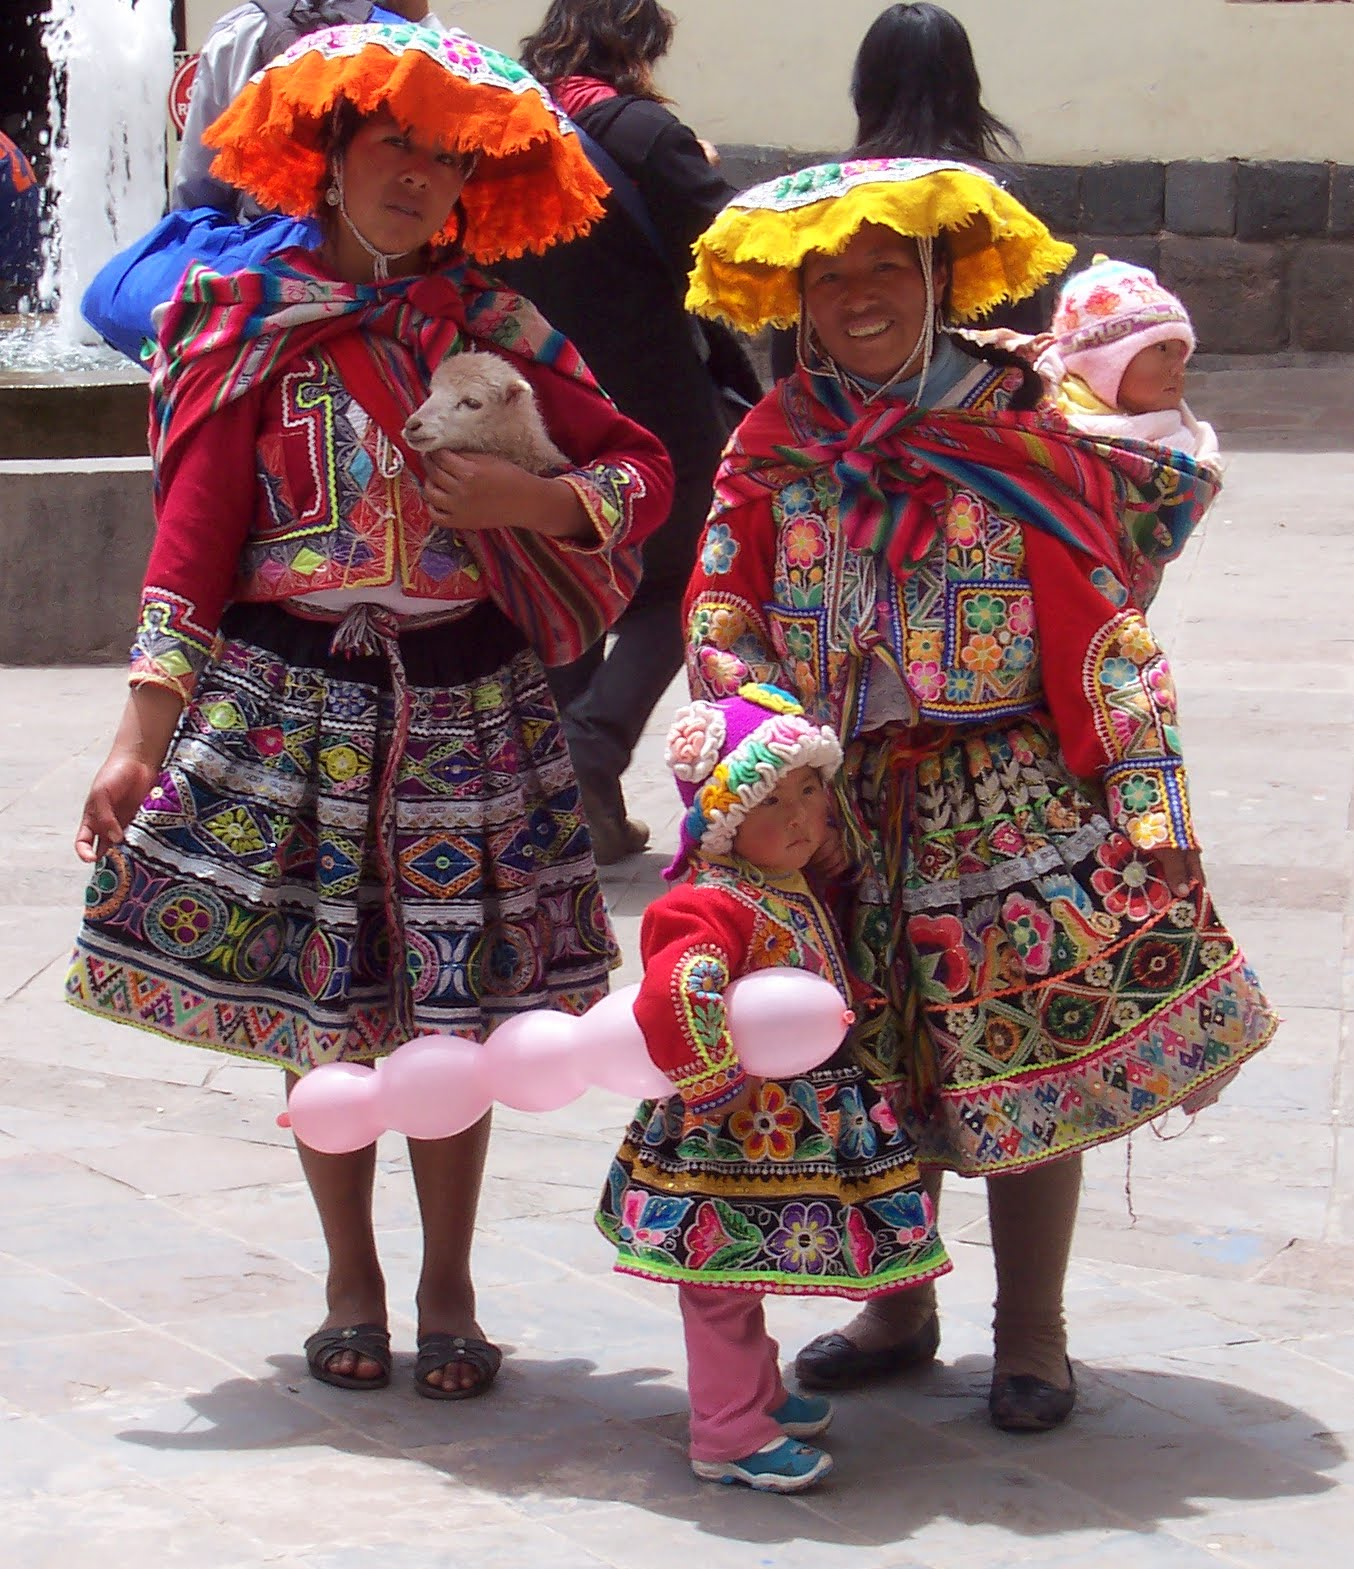 Women clad in traditional clothes on the street of Cusco, Peru.